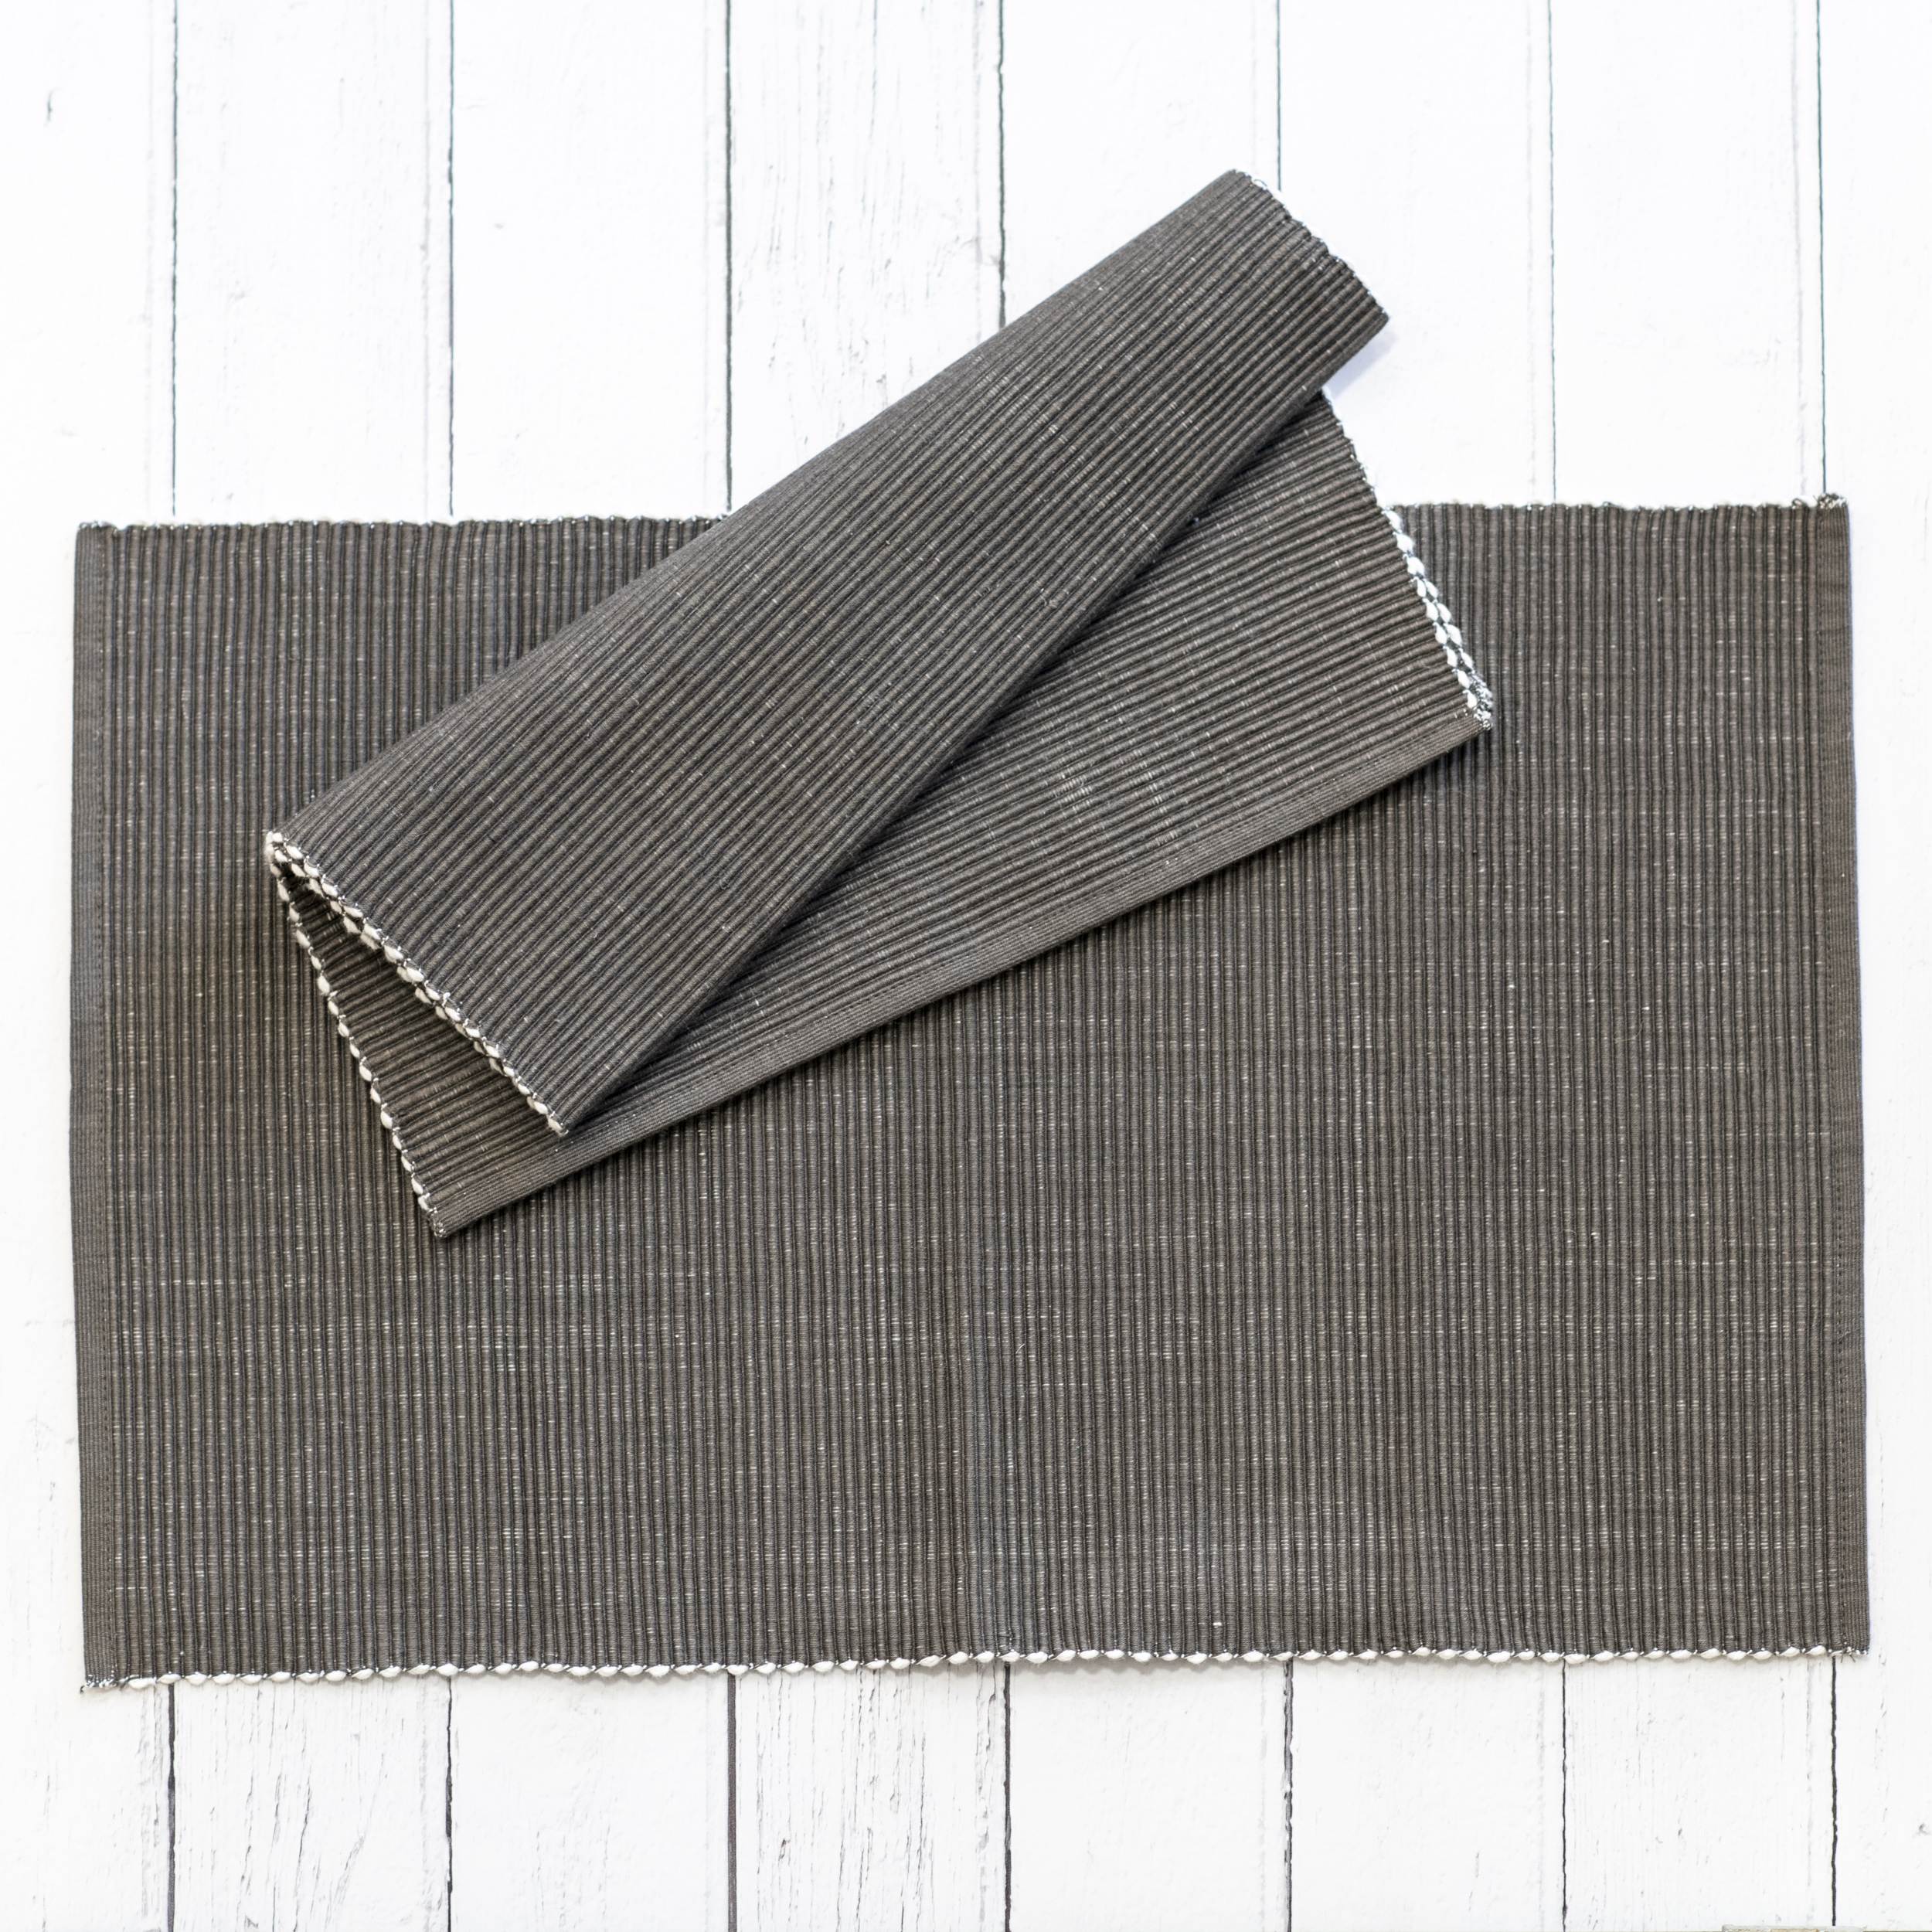 Ribbed Grey Placemat - Set of 2